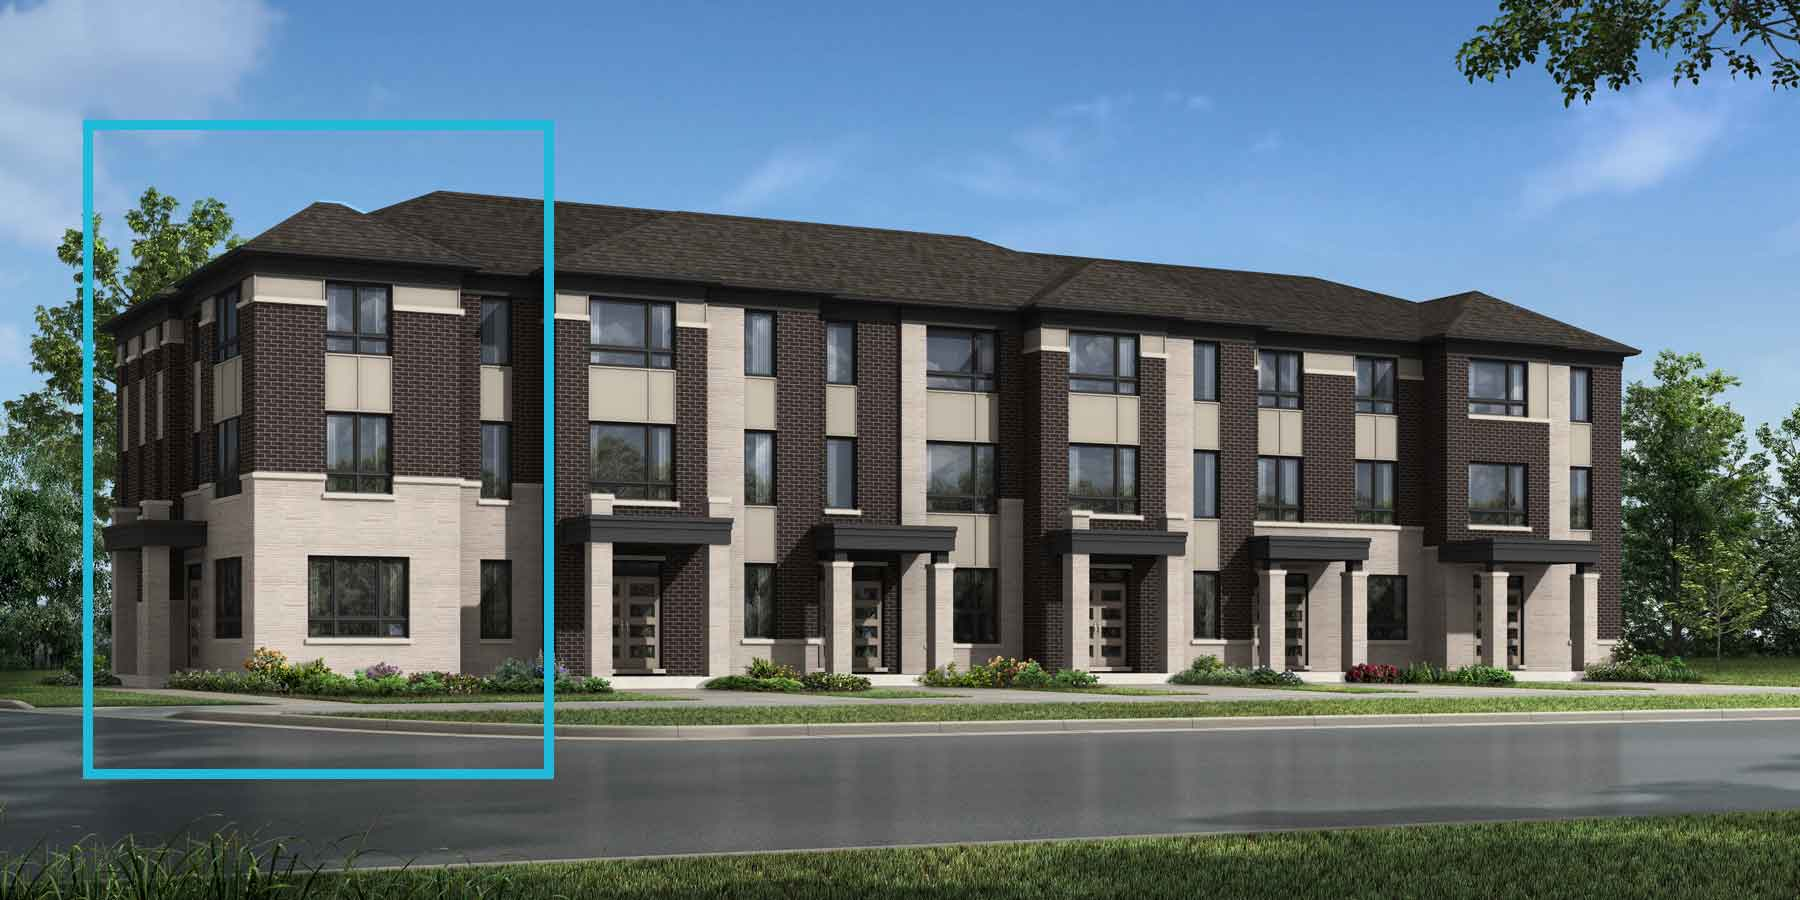 Lupin Corner Plan TownHomes at Seaton Whitevale in Pickering Ontario by Mattamy Homes